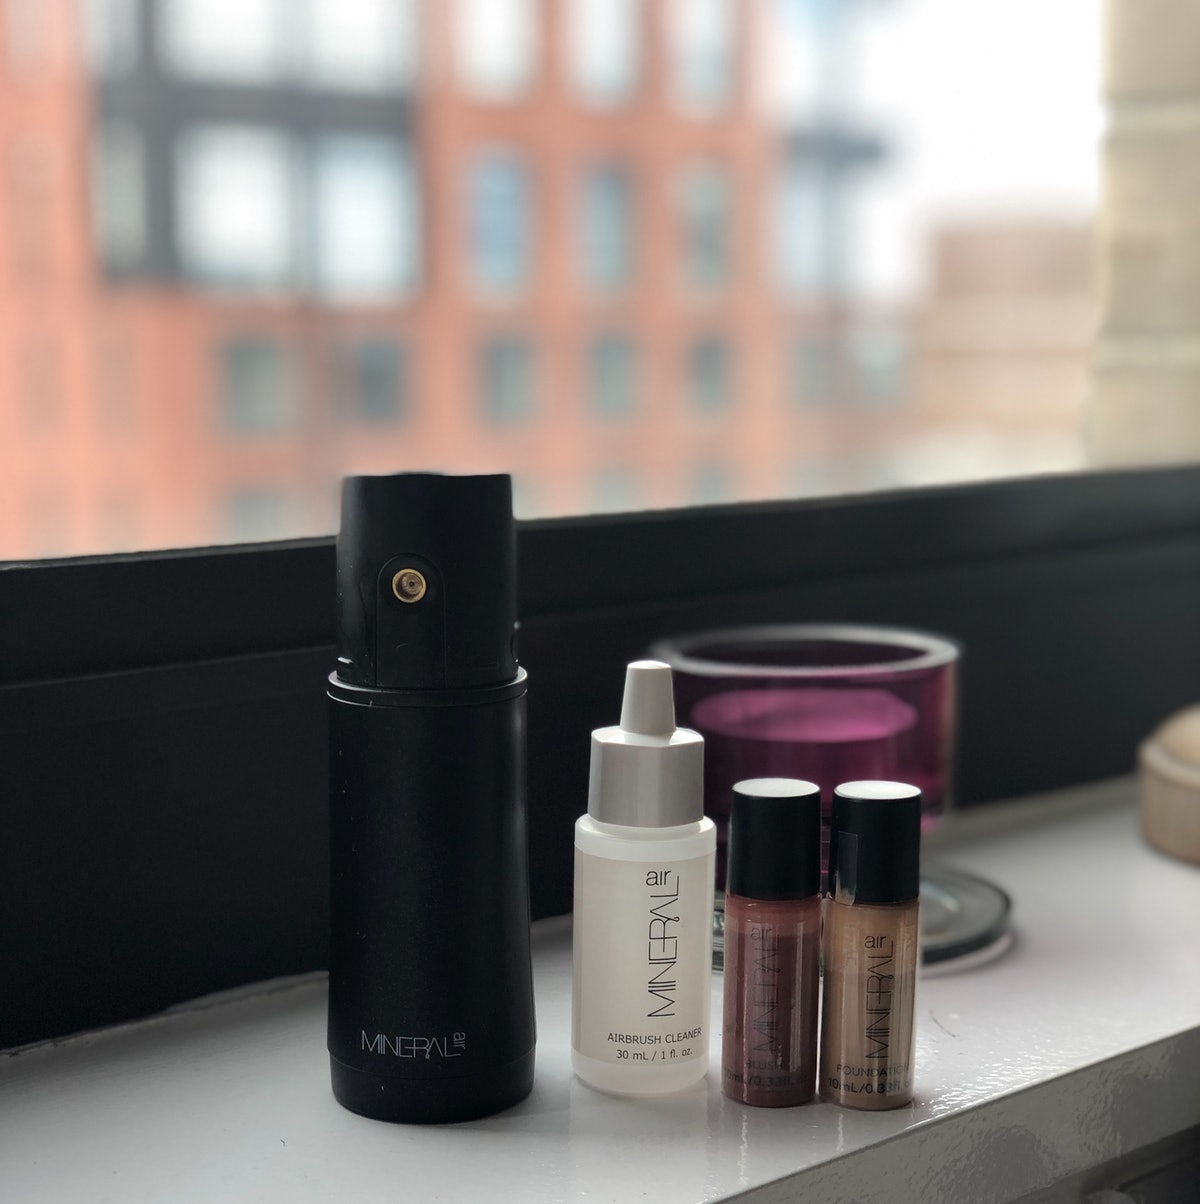 The Mineral Air device is small, compact, and perfect for travel.